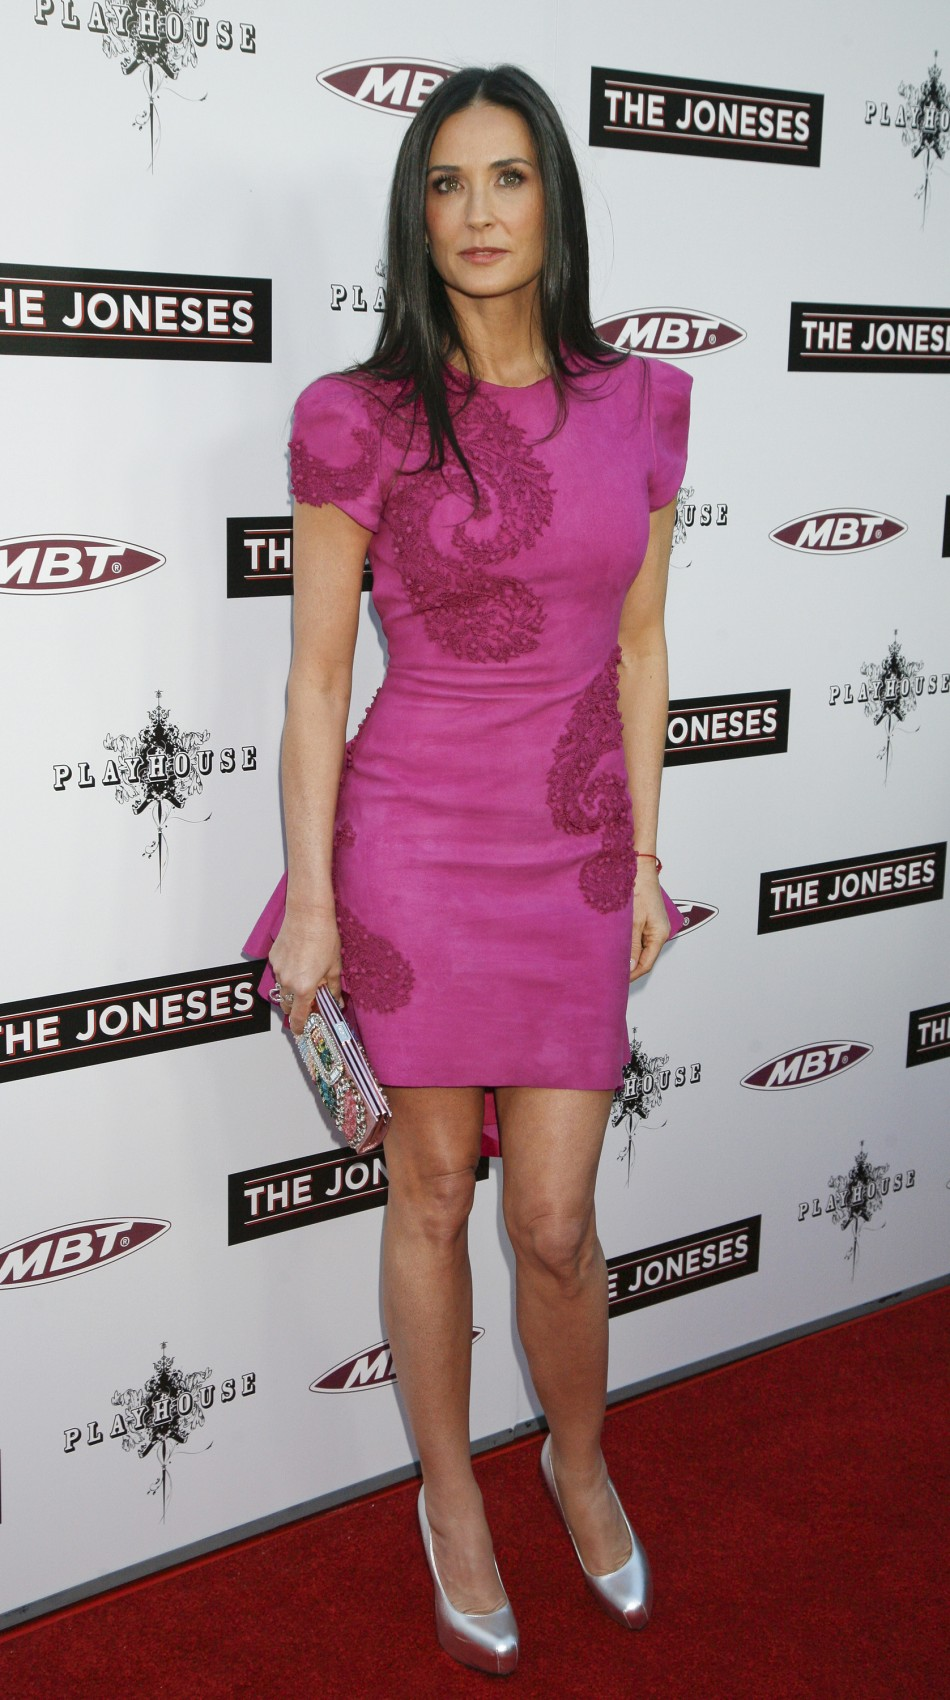 Actress Demi Moore, cast member of the movie quotThe Jonesesquot, arrives for the films premiere in Los Angeles